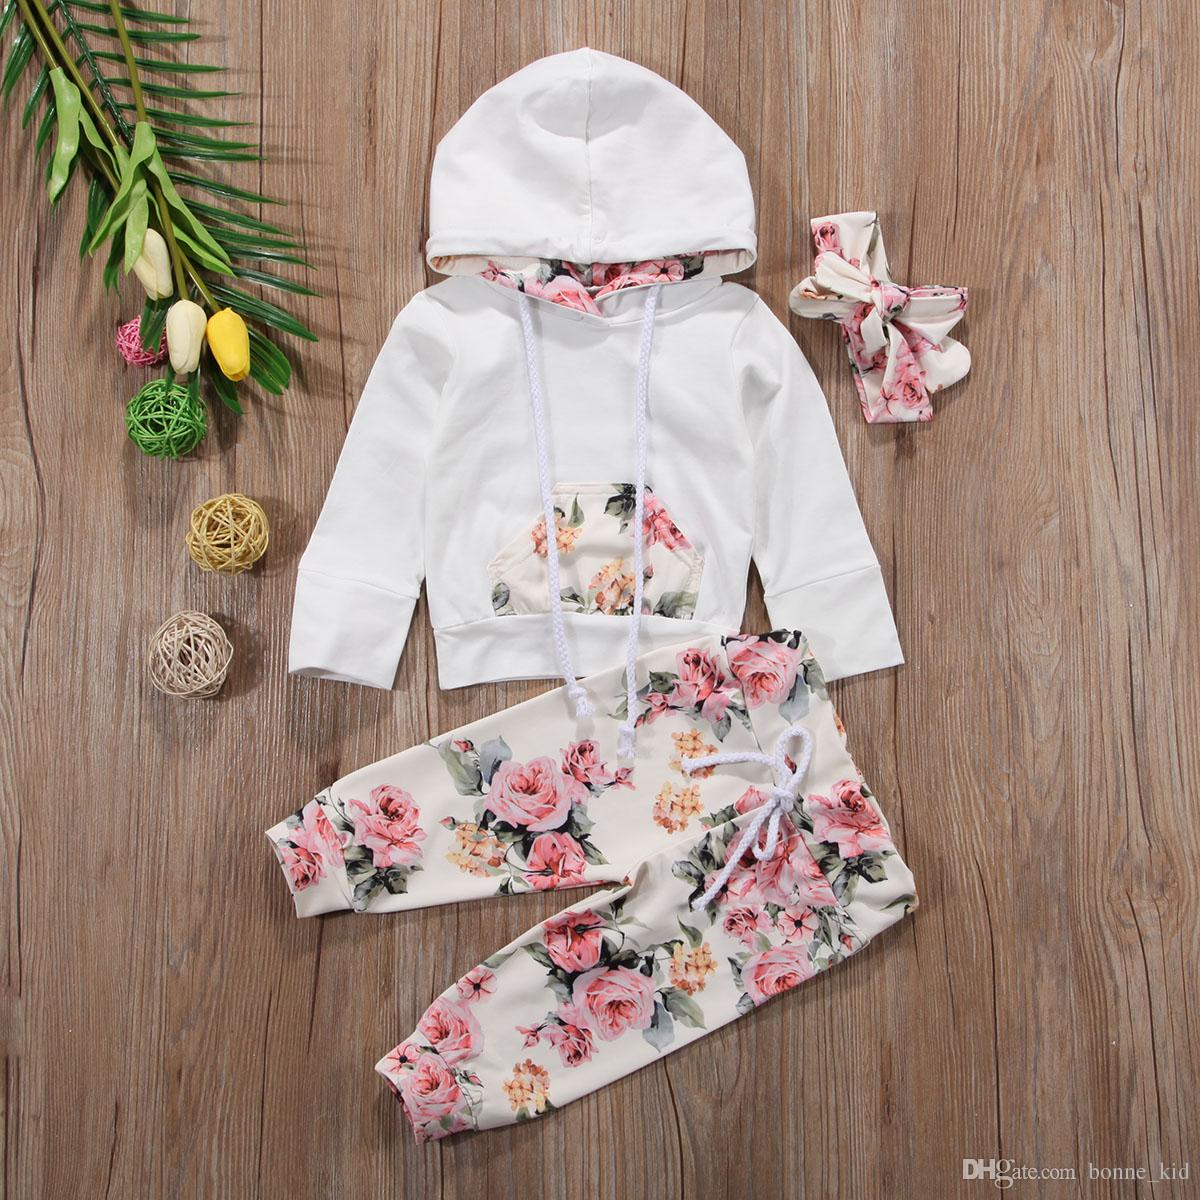 5624834127cd5 New Baby Infant Girls Clothing Set Flower Long Sleeve Hooded Tops +Pants+Headband  Outfits 3pcs Set Floral Tracksuit Baby Girl Toddler 0-24M